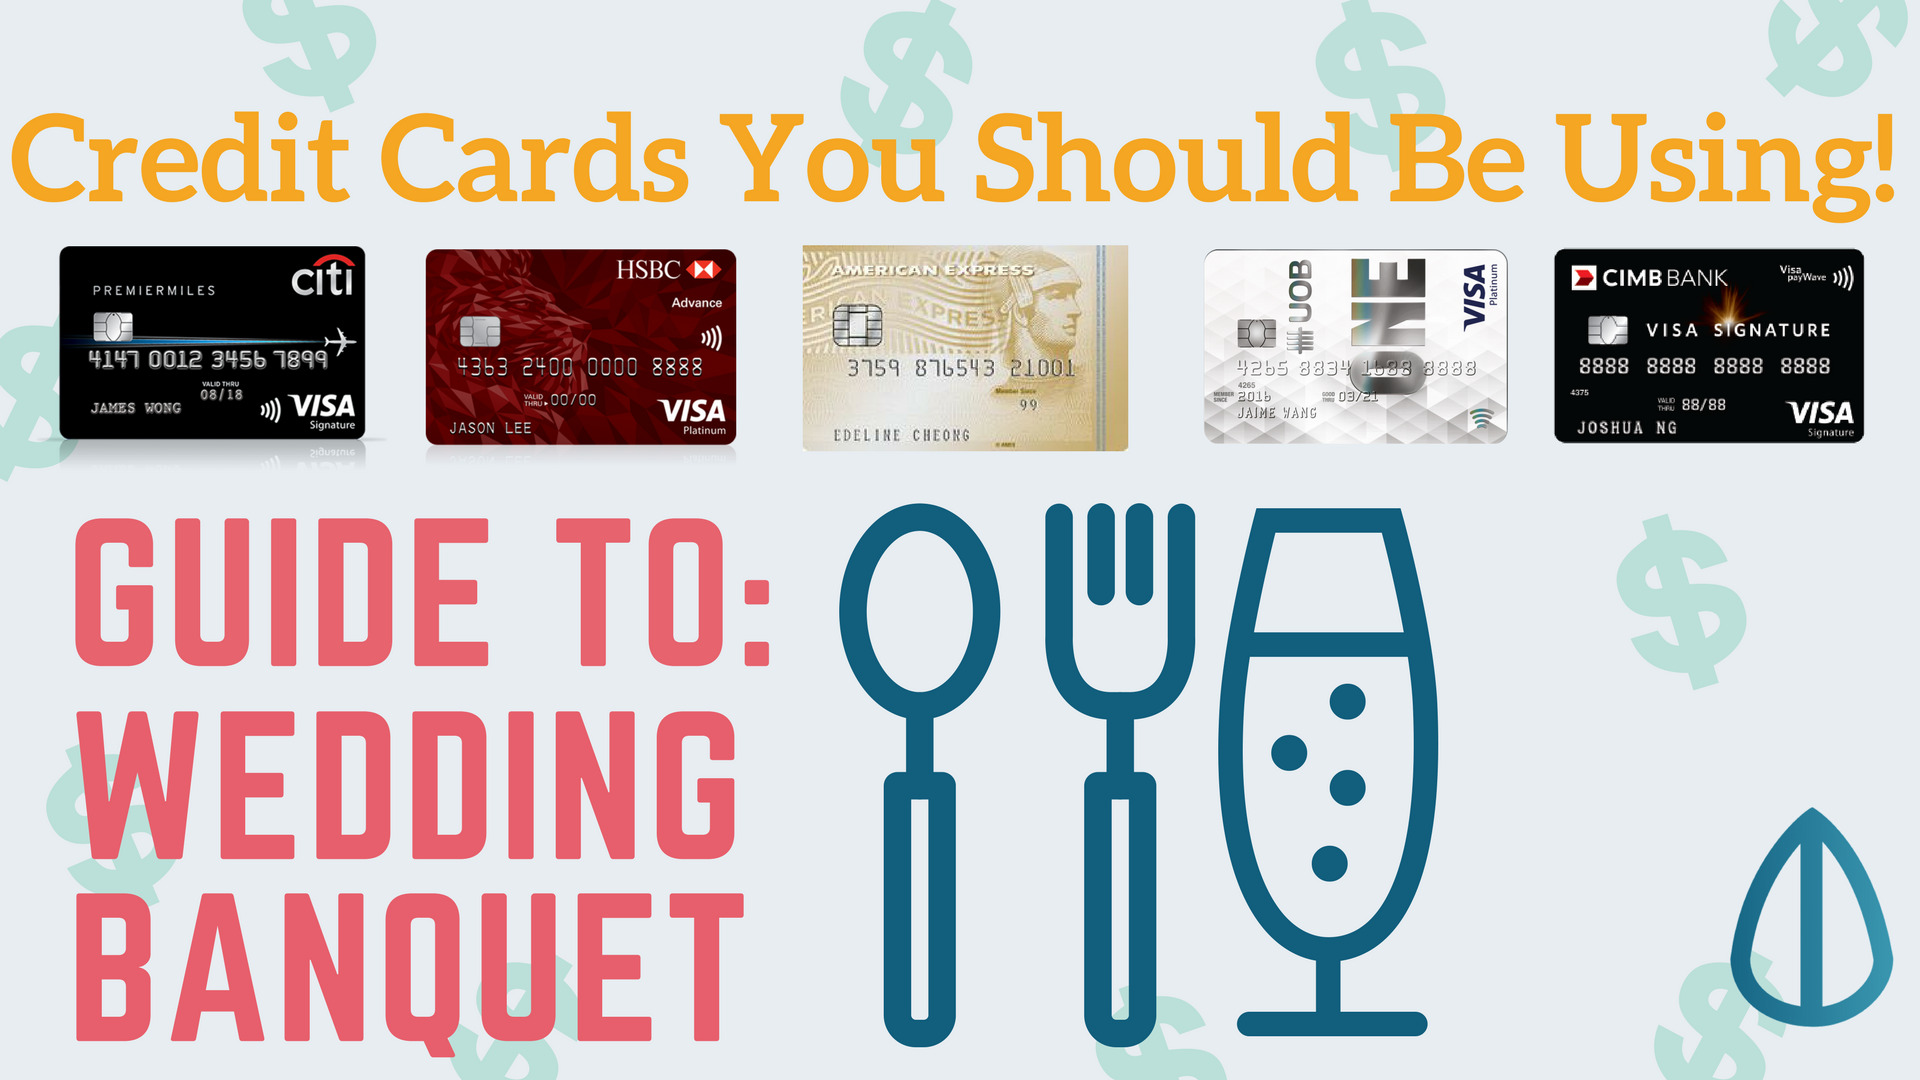 Credit cards to use for wedding